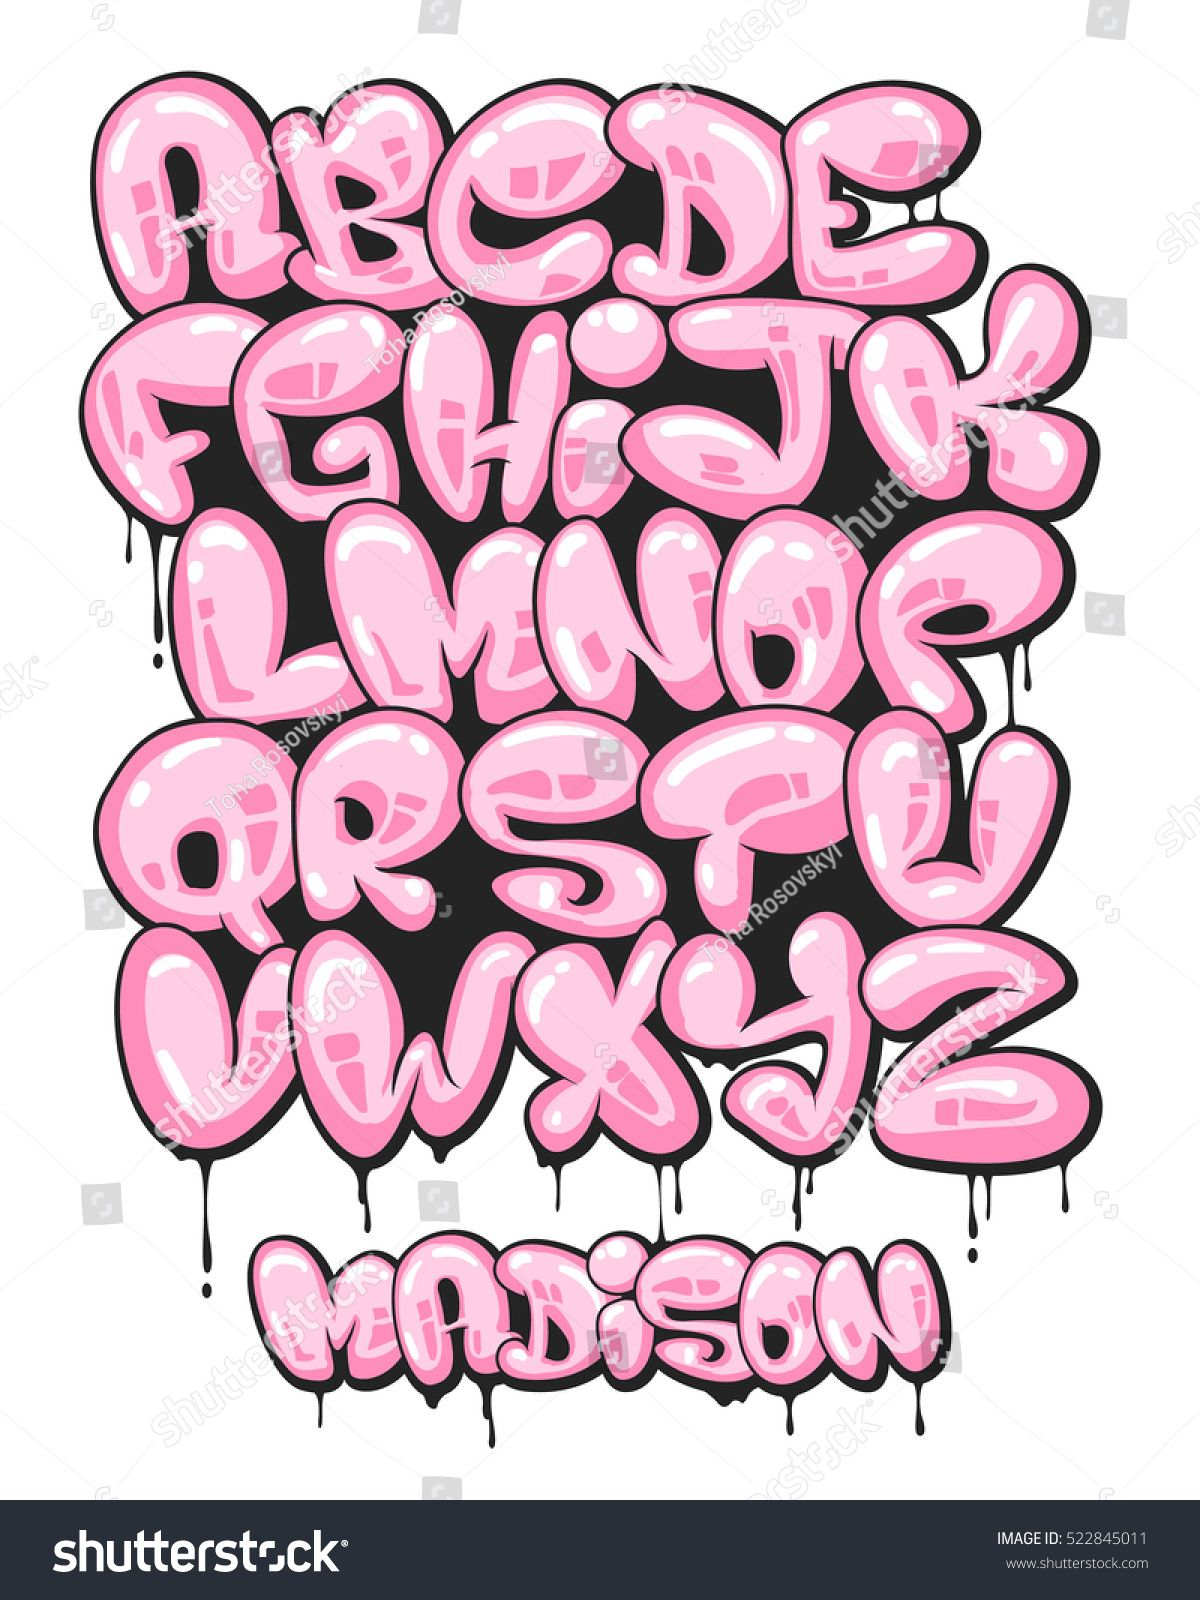 Graffiti Bubble Shaped Alphabet Set